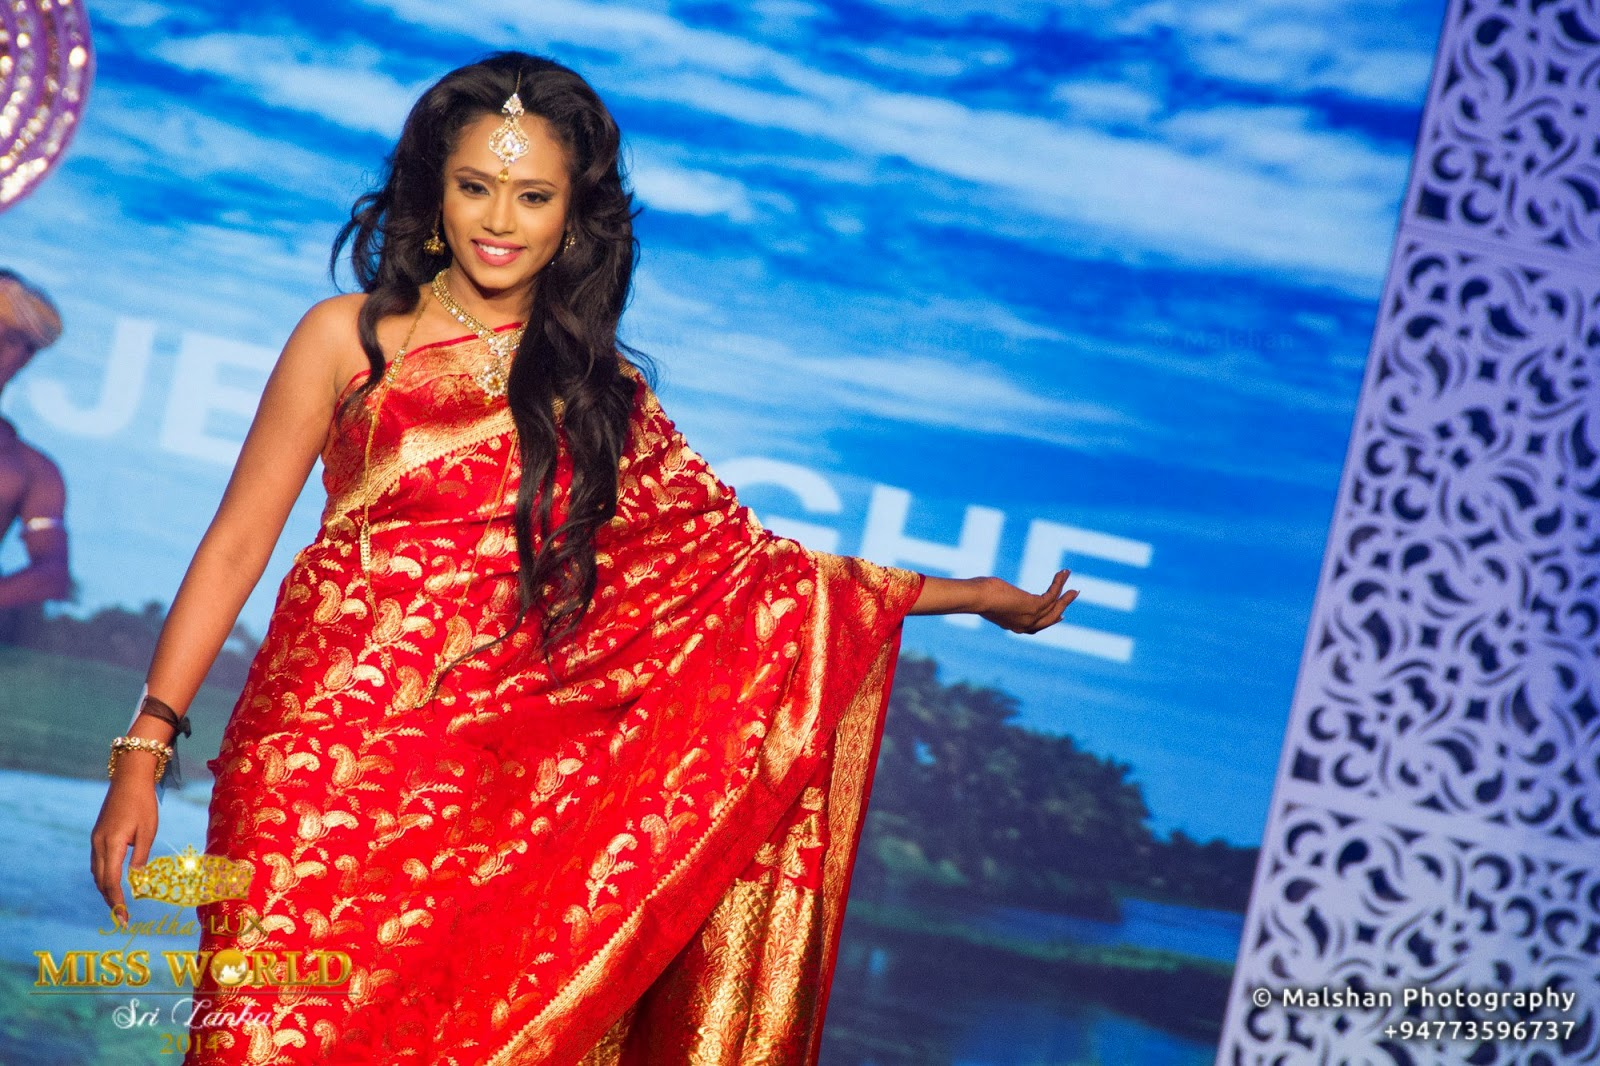 Siyatha - Lux Miss World Sri Lanka '14 - Grand Finale